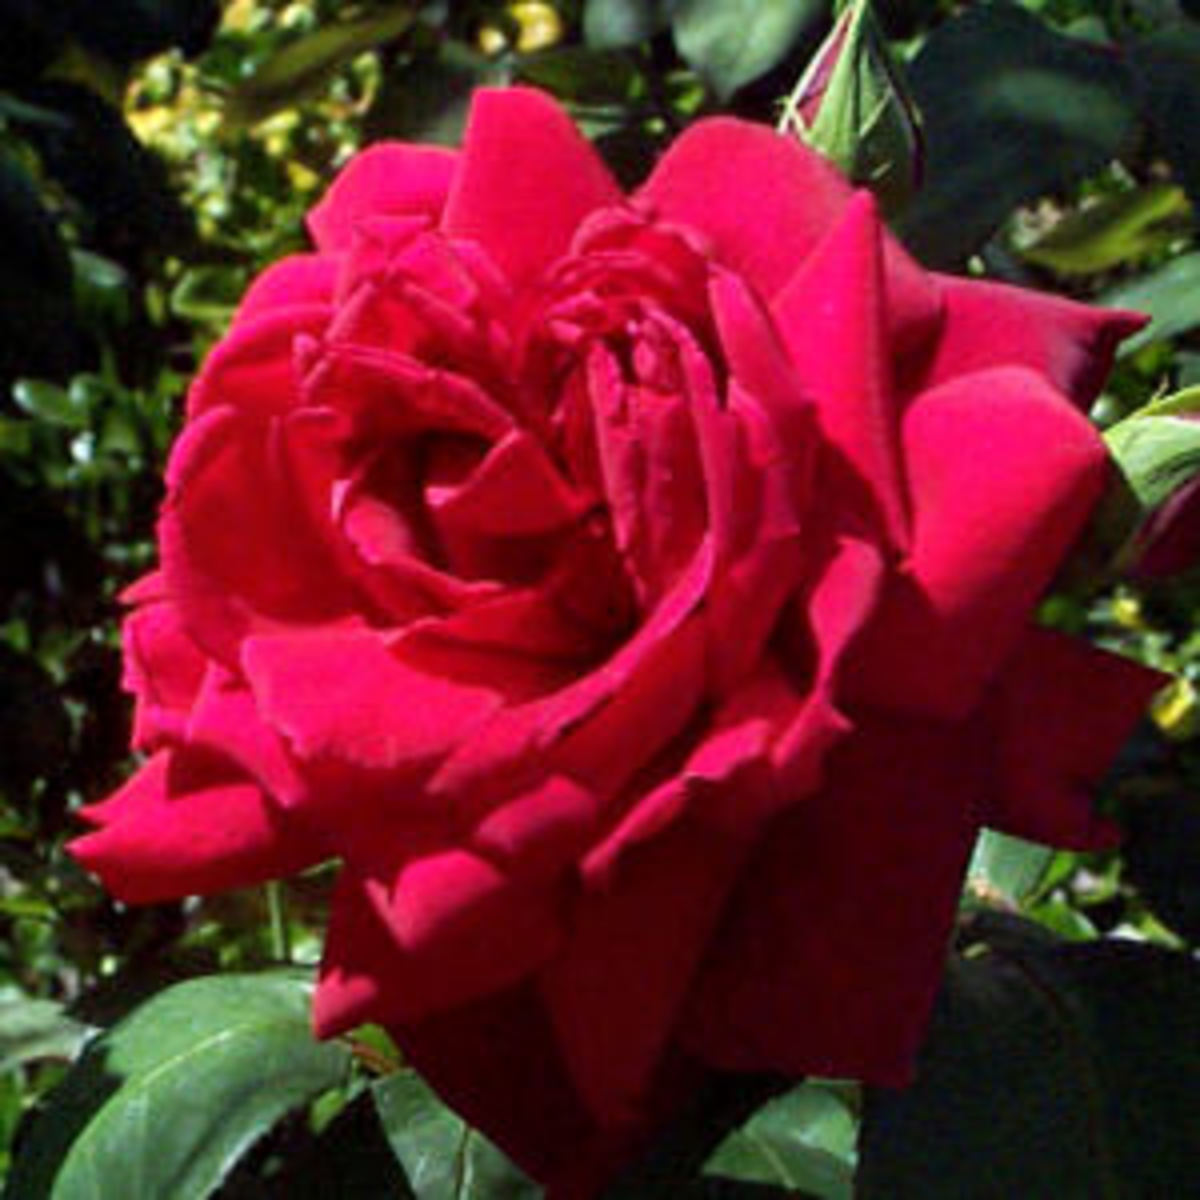 Oklahoma rose